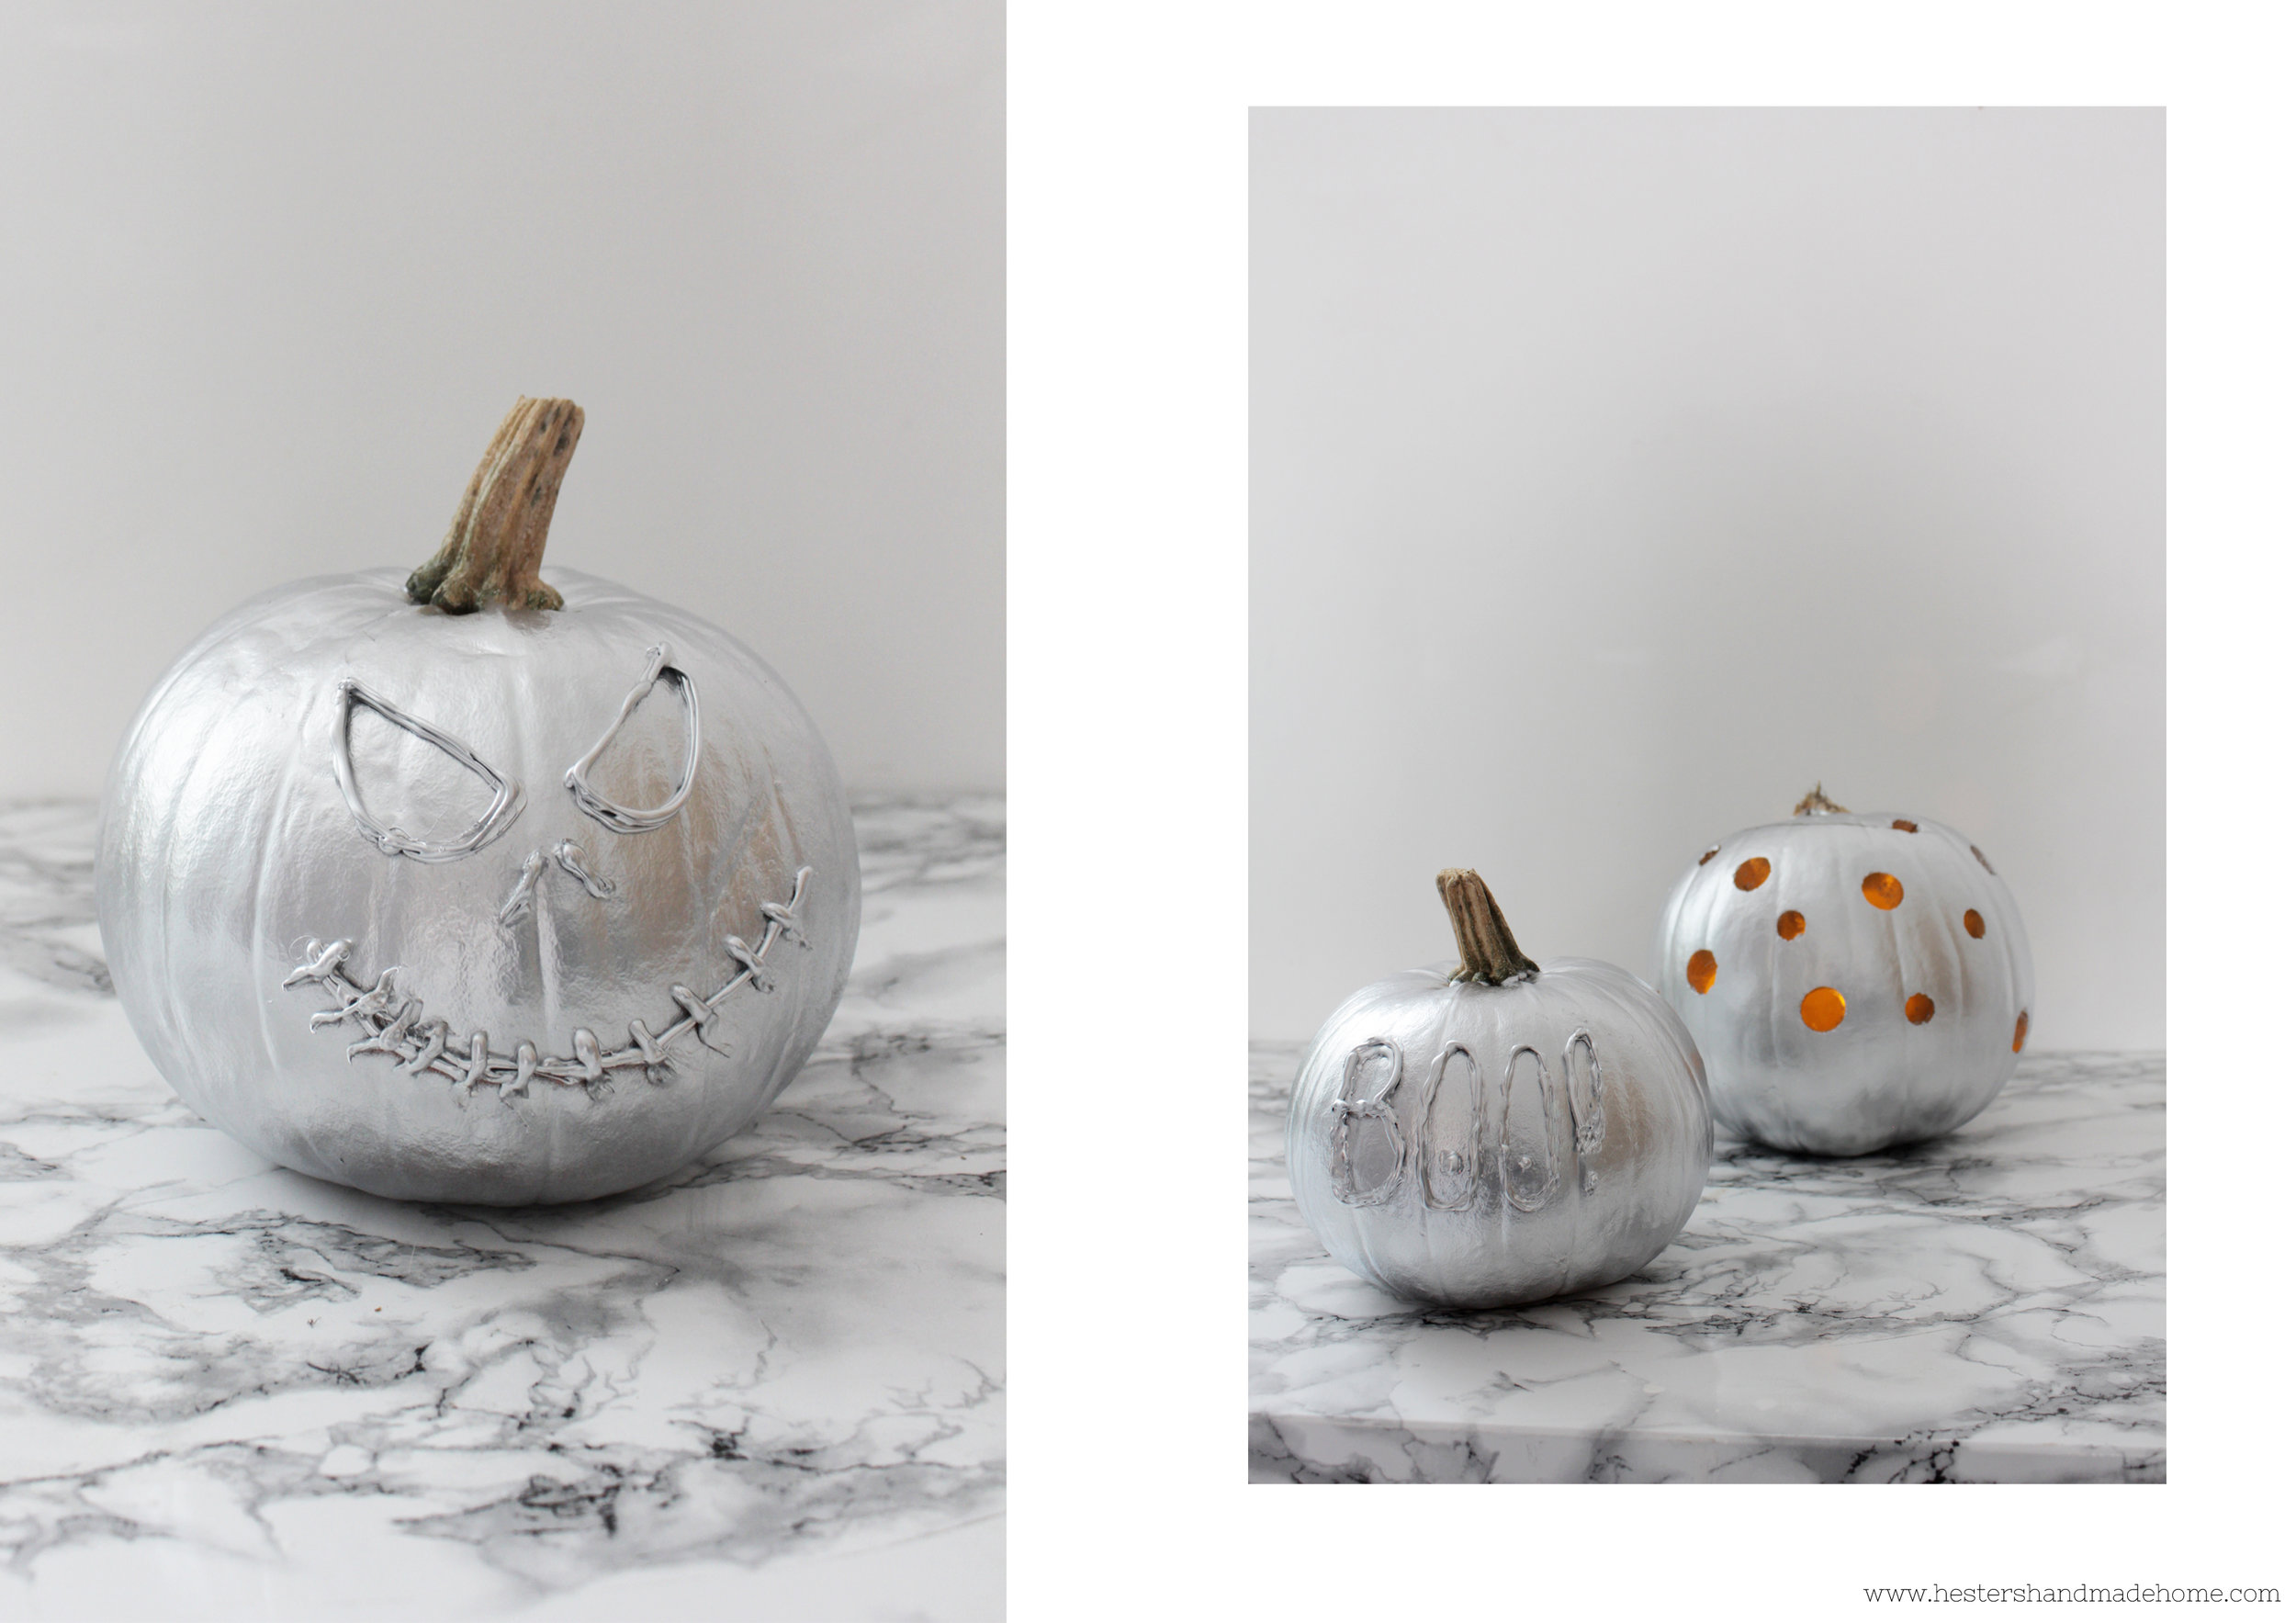 Pumpkin carving with Ryobi One plus power tools by www.hestershandmadehome.com